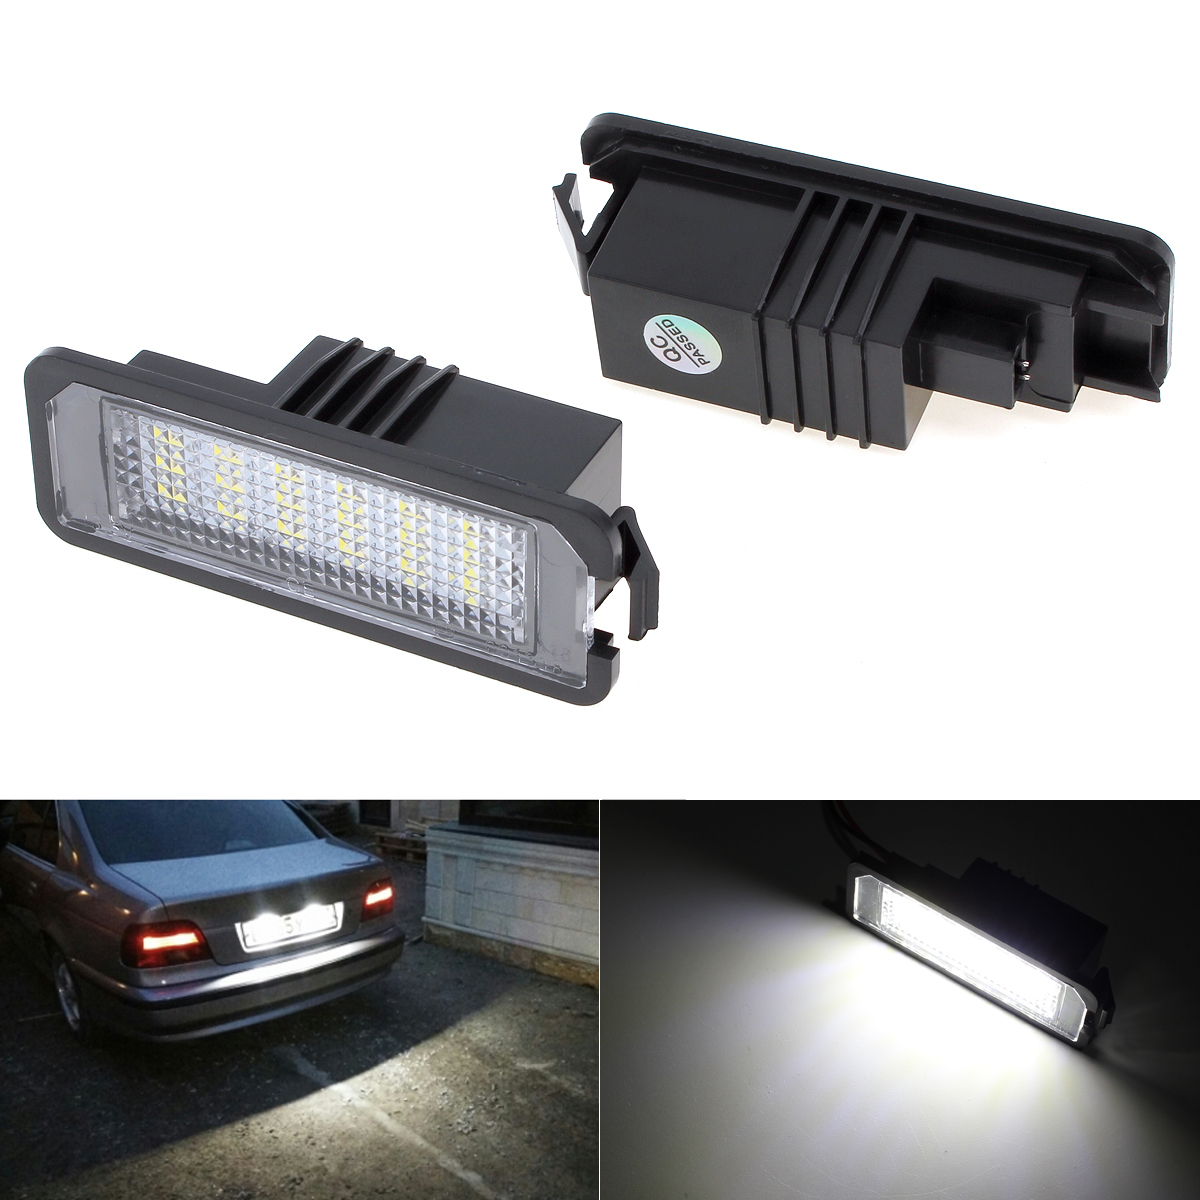 2Pcs LED License Plate Lights SMD3528 6000K Number Plate Light For BMW E82 E88 E90 E92 E93 E39 E60 Sedan M5 E70 X5 E71 E72 X6 2x e marked obc error free 24 led white license number plate light lamp for bmw e81 e82 e90 e91 e92 e93 e60 e61 e39 x1 e84